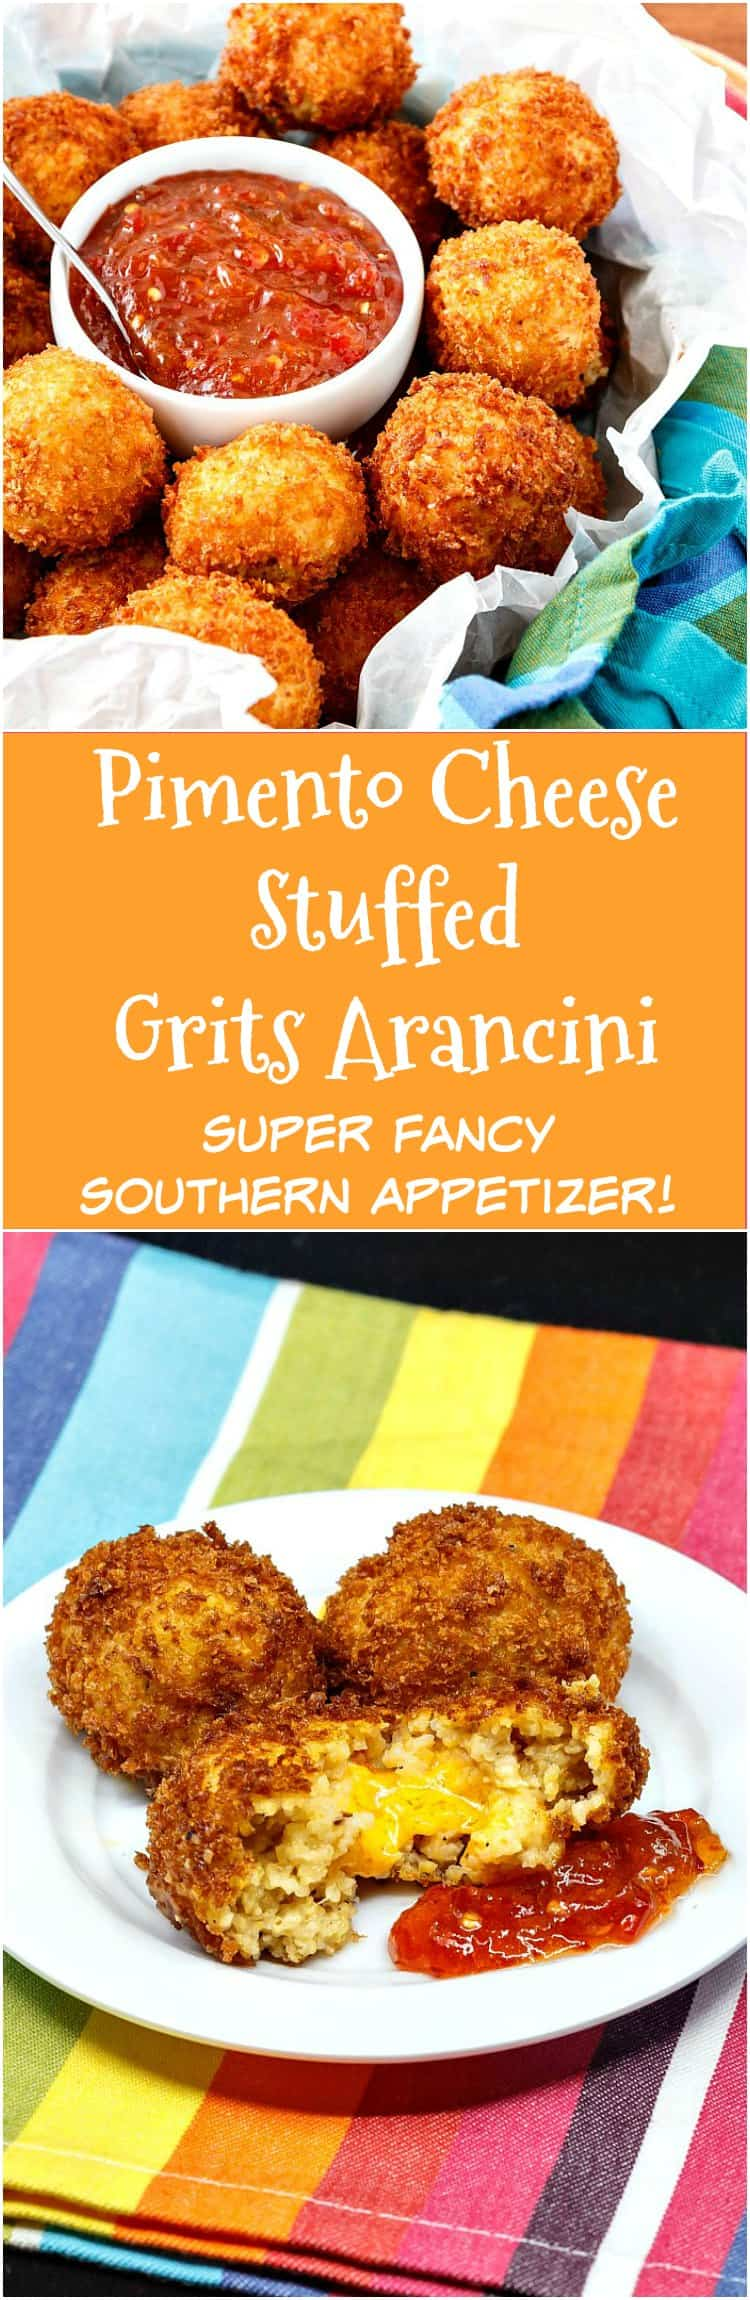 Pimento Cheese Stuffed Grits Arancini are a fancy southern appetizer guaranteed to please at your next holiday cocktail party. Crispy on the outside, creamy and cheesy on the inside. When paired with pepper jelly for dipping, it's hard to beat these southern style arancini! | pastrychefonline.com